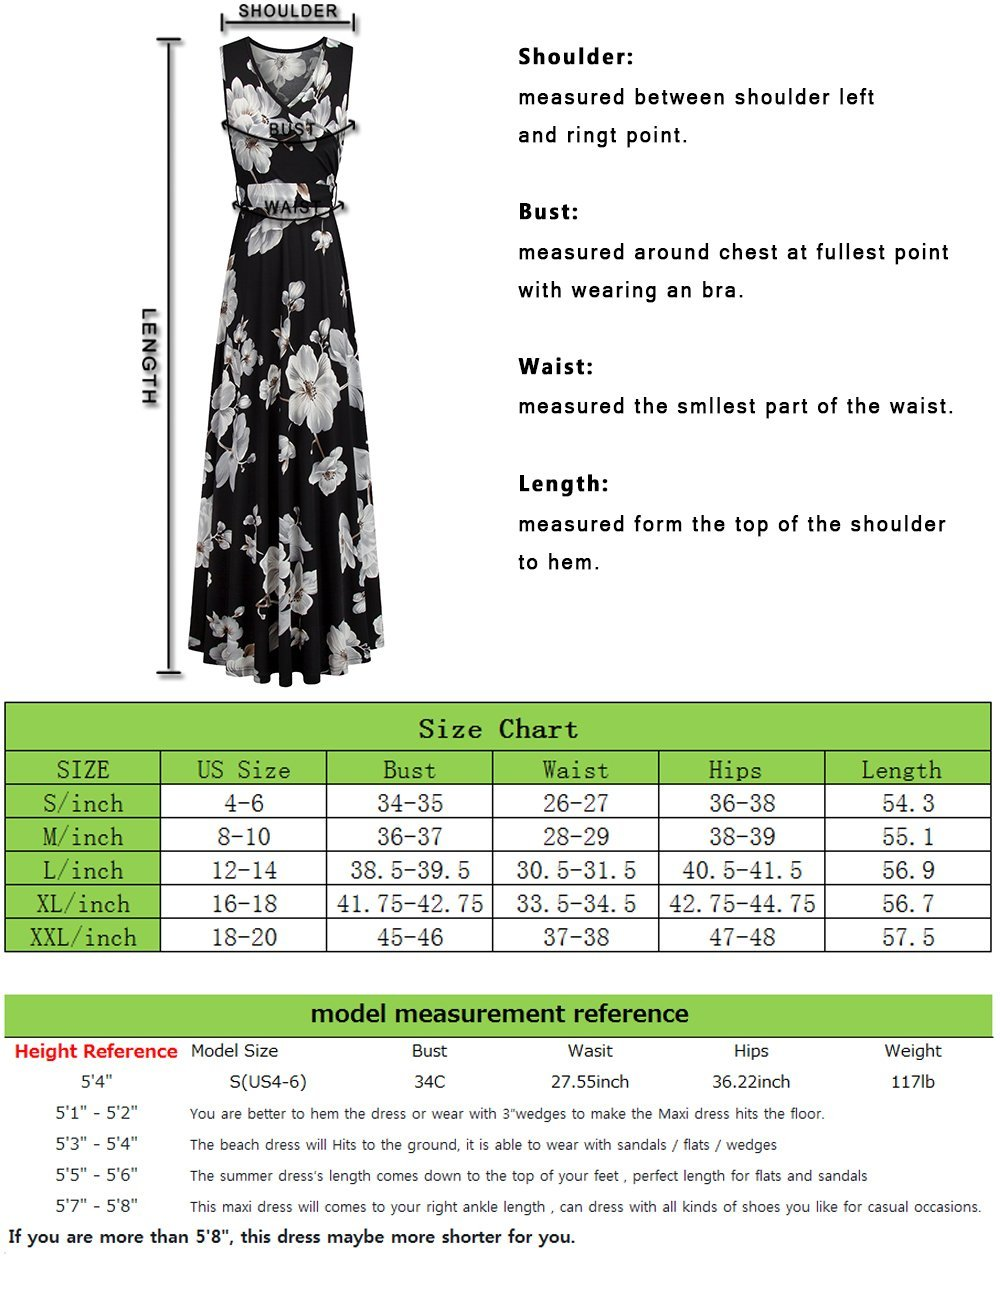 Comila Floral Dresses for Women Casual Beach Holiday, Sexy Warp V Neck High Waist with Bow Fashion Vintage Floral Printed Sleeveless Casual Tank Dress with Pockets Black M(US8-10) by Comila (Image #7)